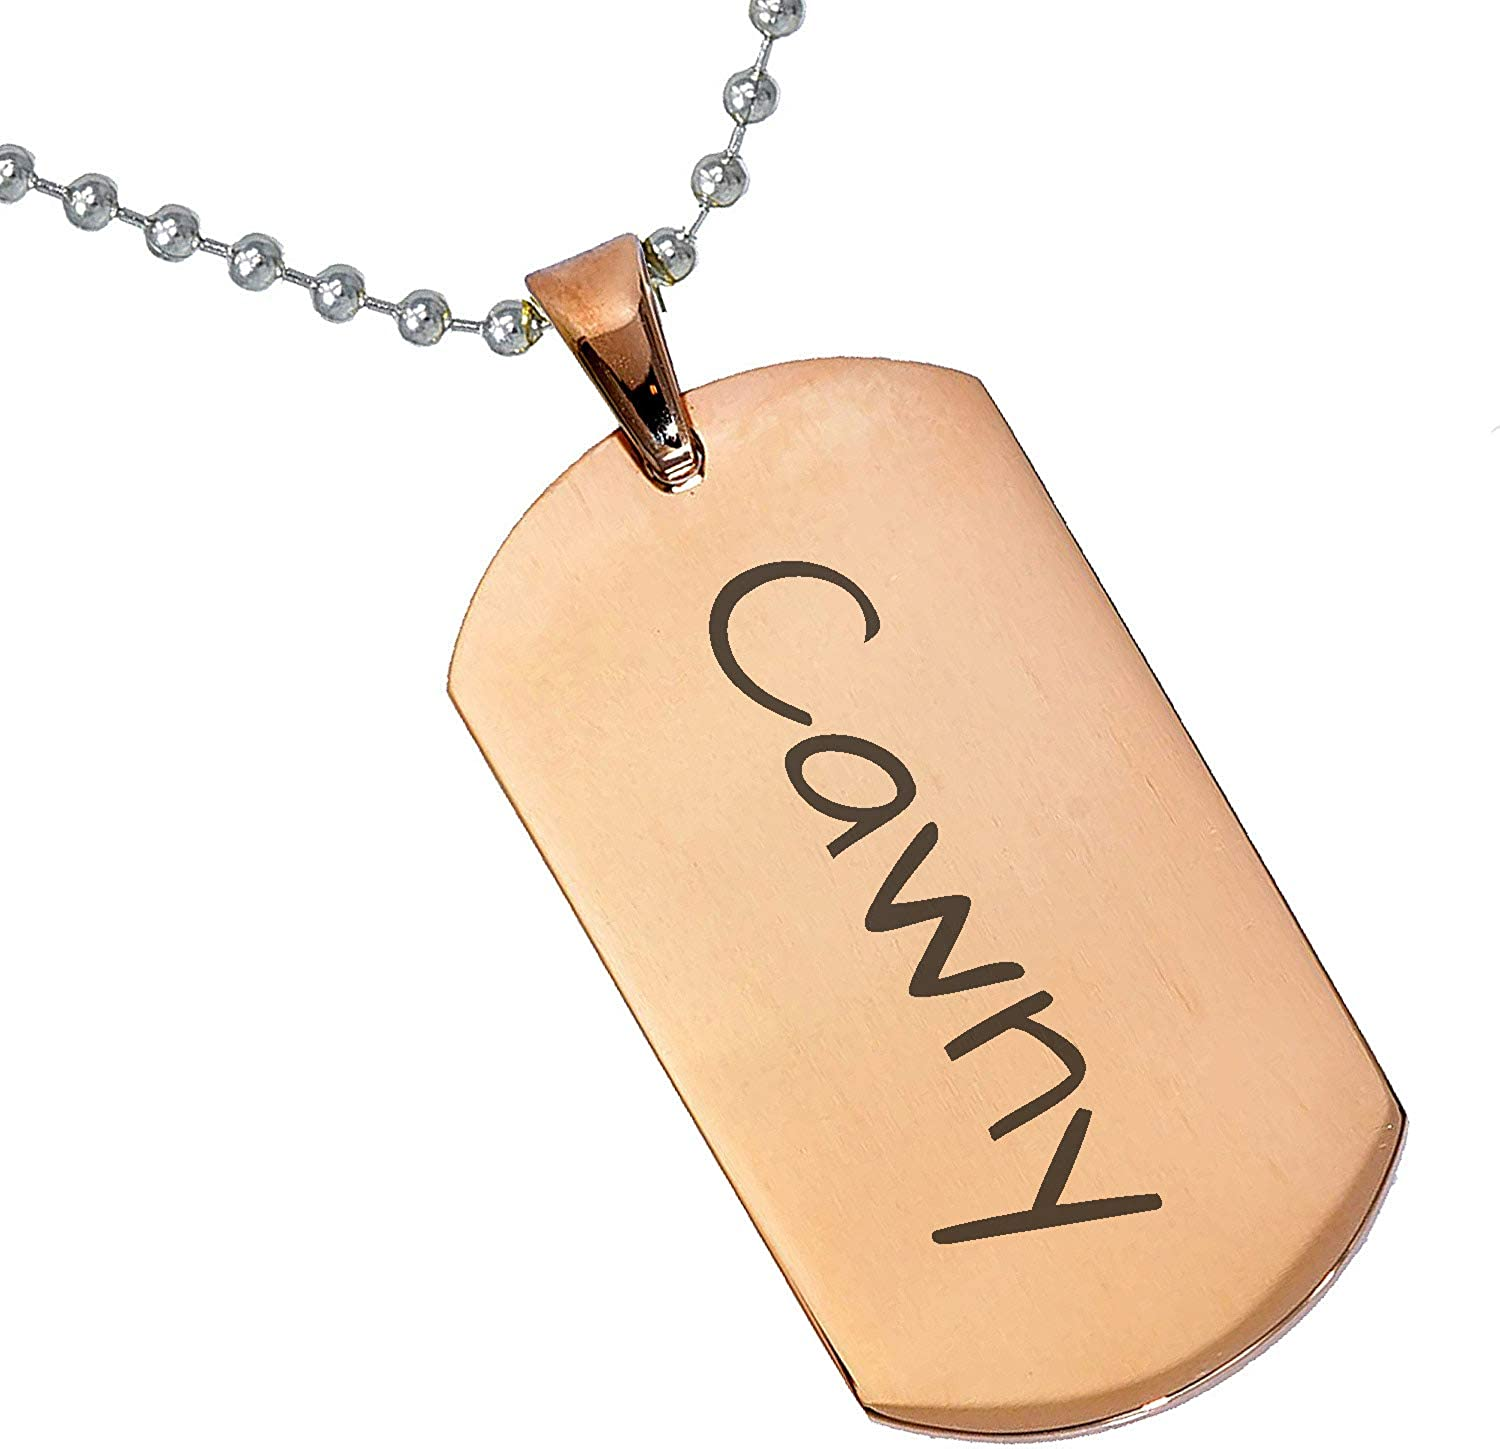 Stainless Steel Silver Gold Black Rose Gold Color Baby Name Cawny Engraved Personalized Gifts For Son Daughter Boyfriend Girlfriend Initial Customizable Pendant Necklace Dog Tags 24 Ball Chain